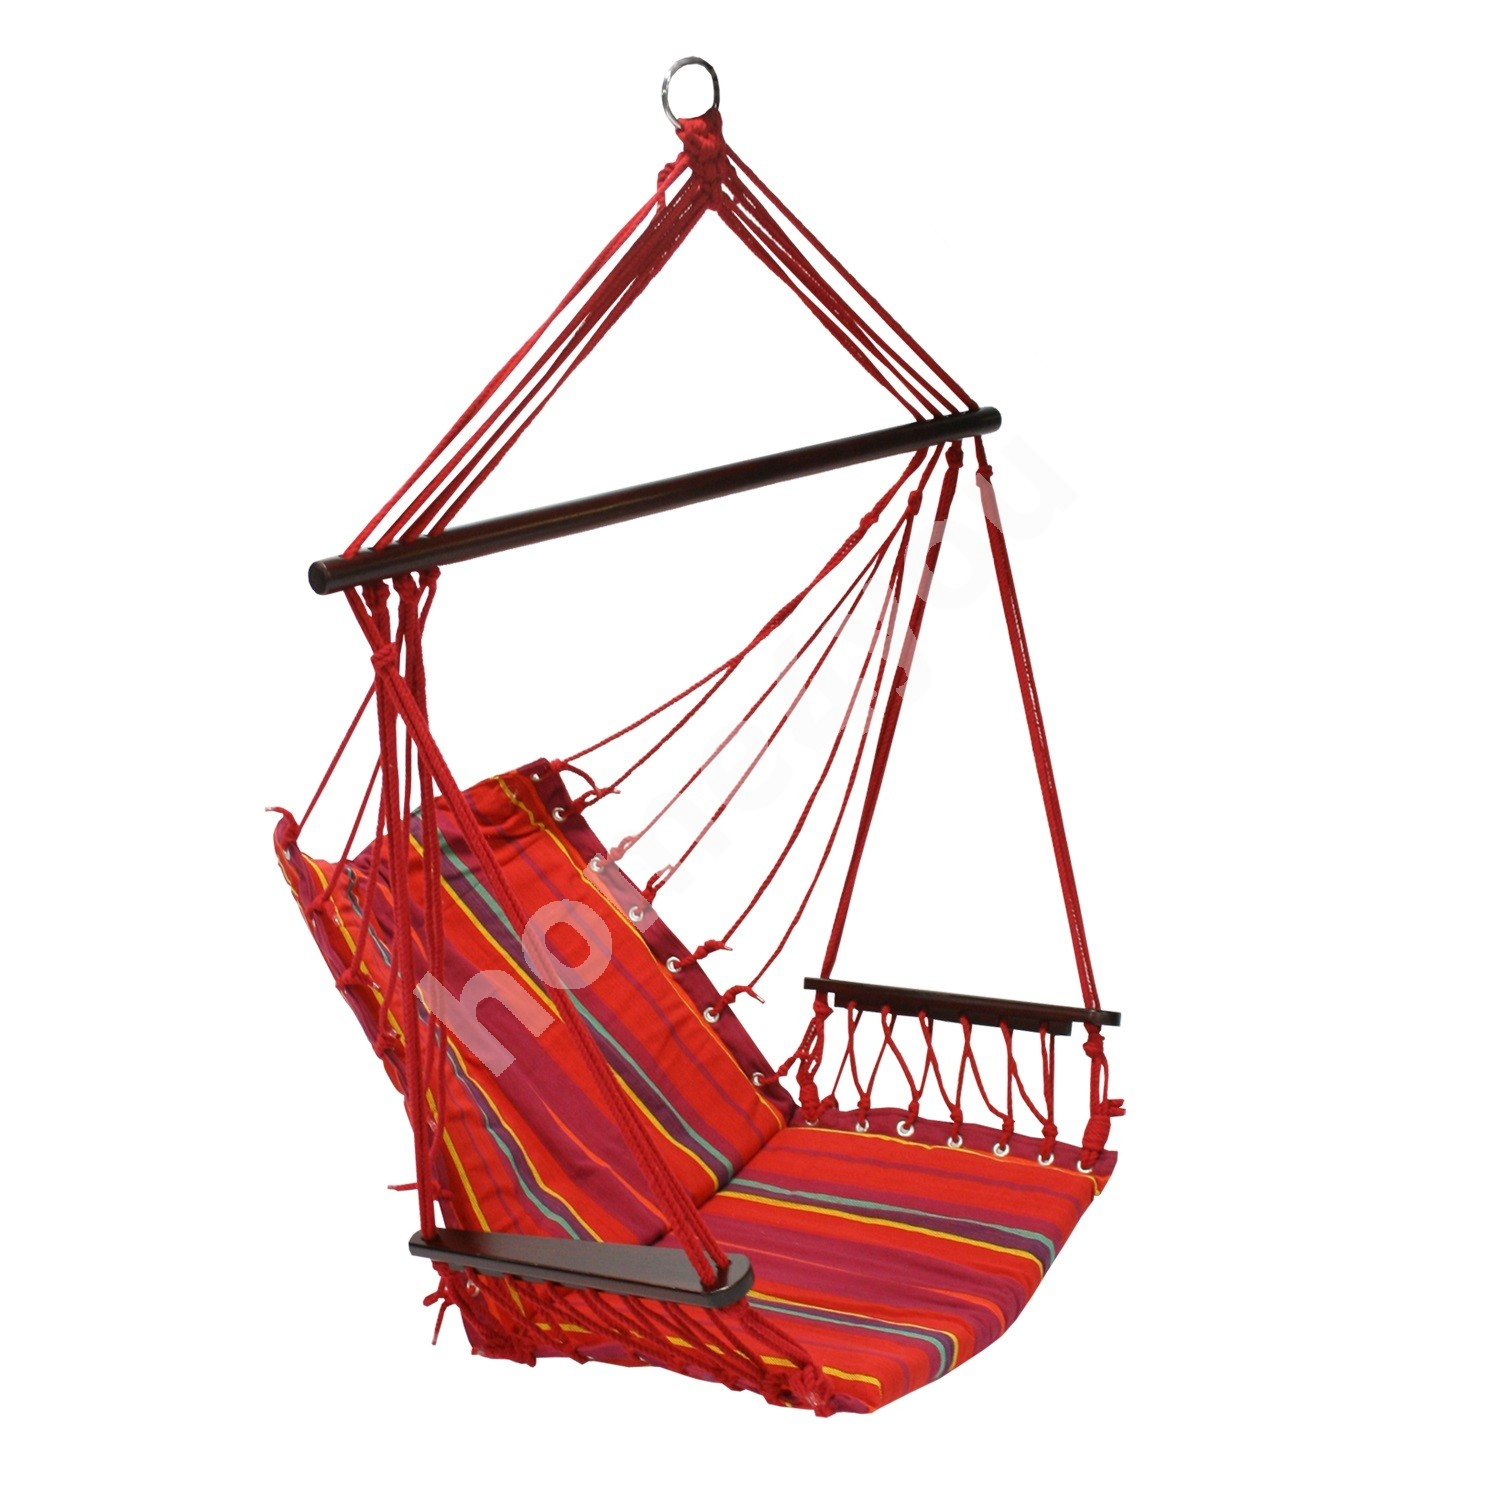 Swing chair HIP with cushion seat, material: cotton, color: red striped